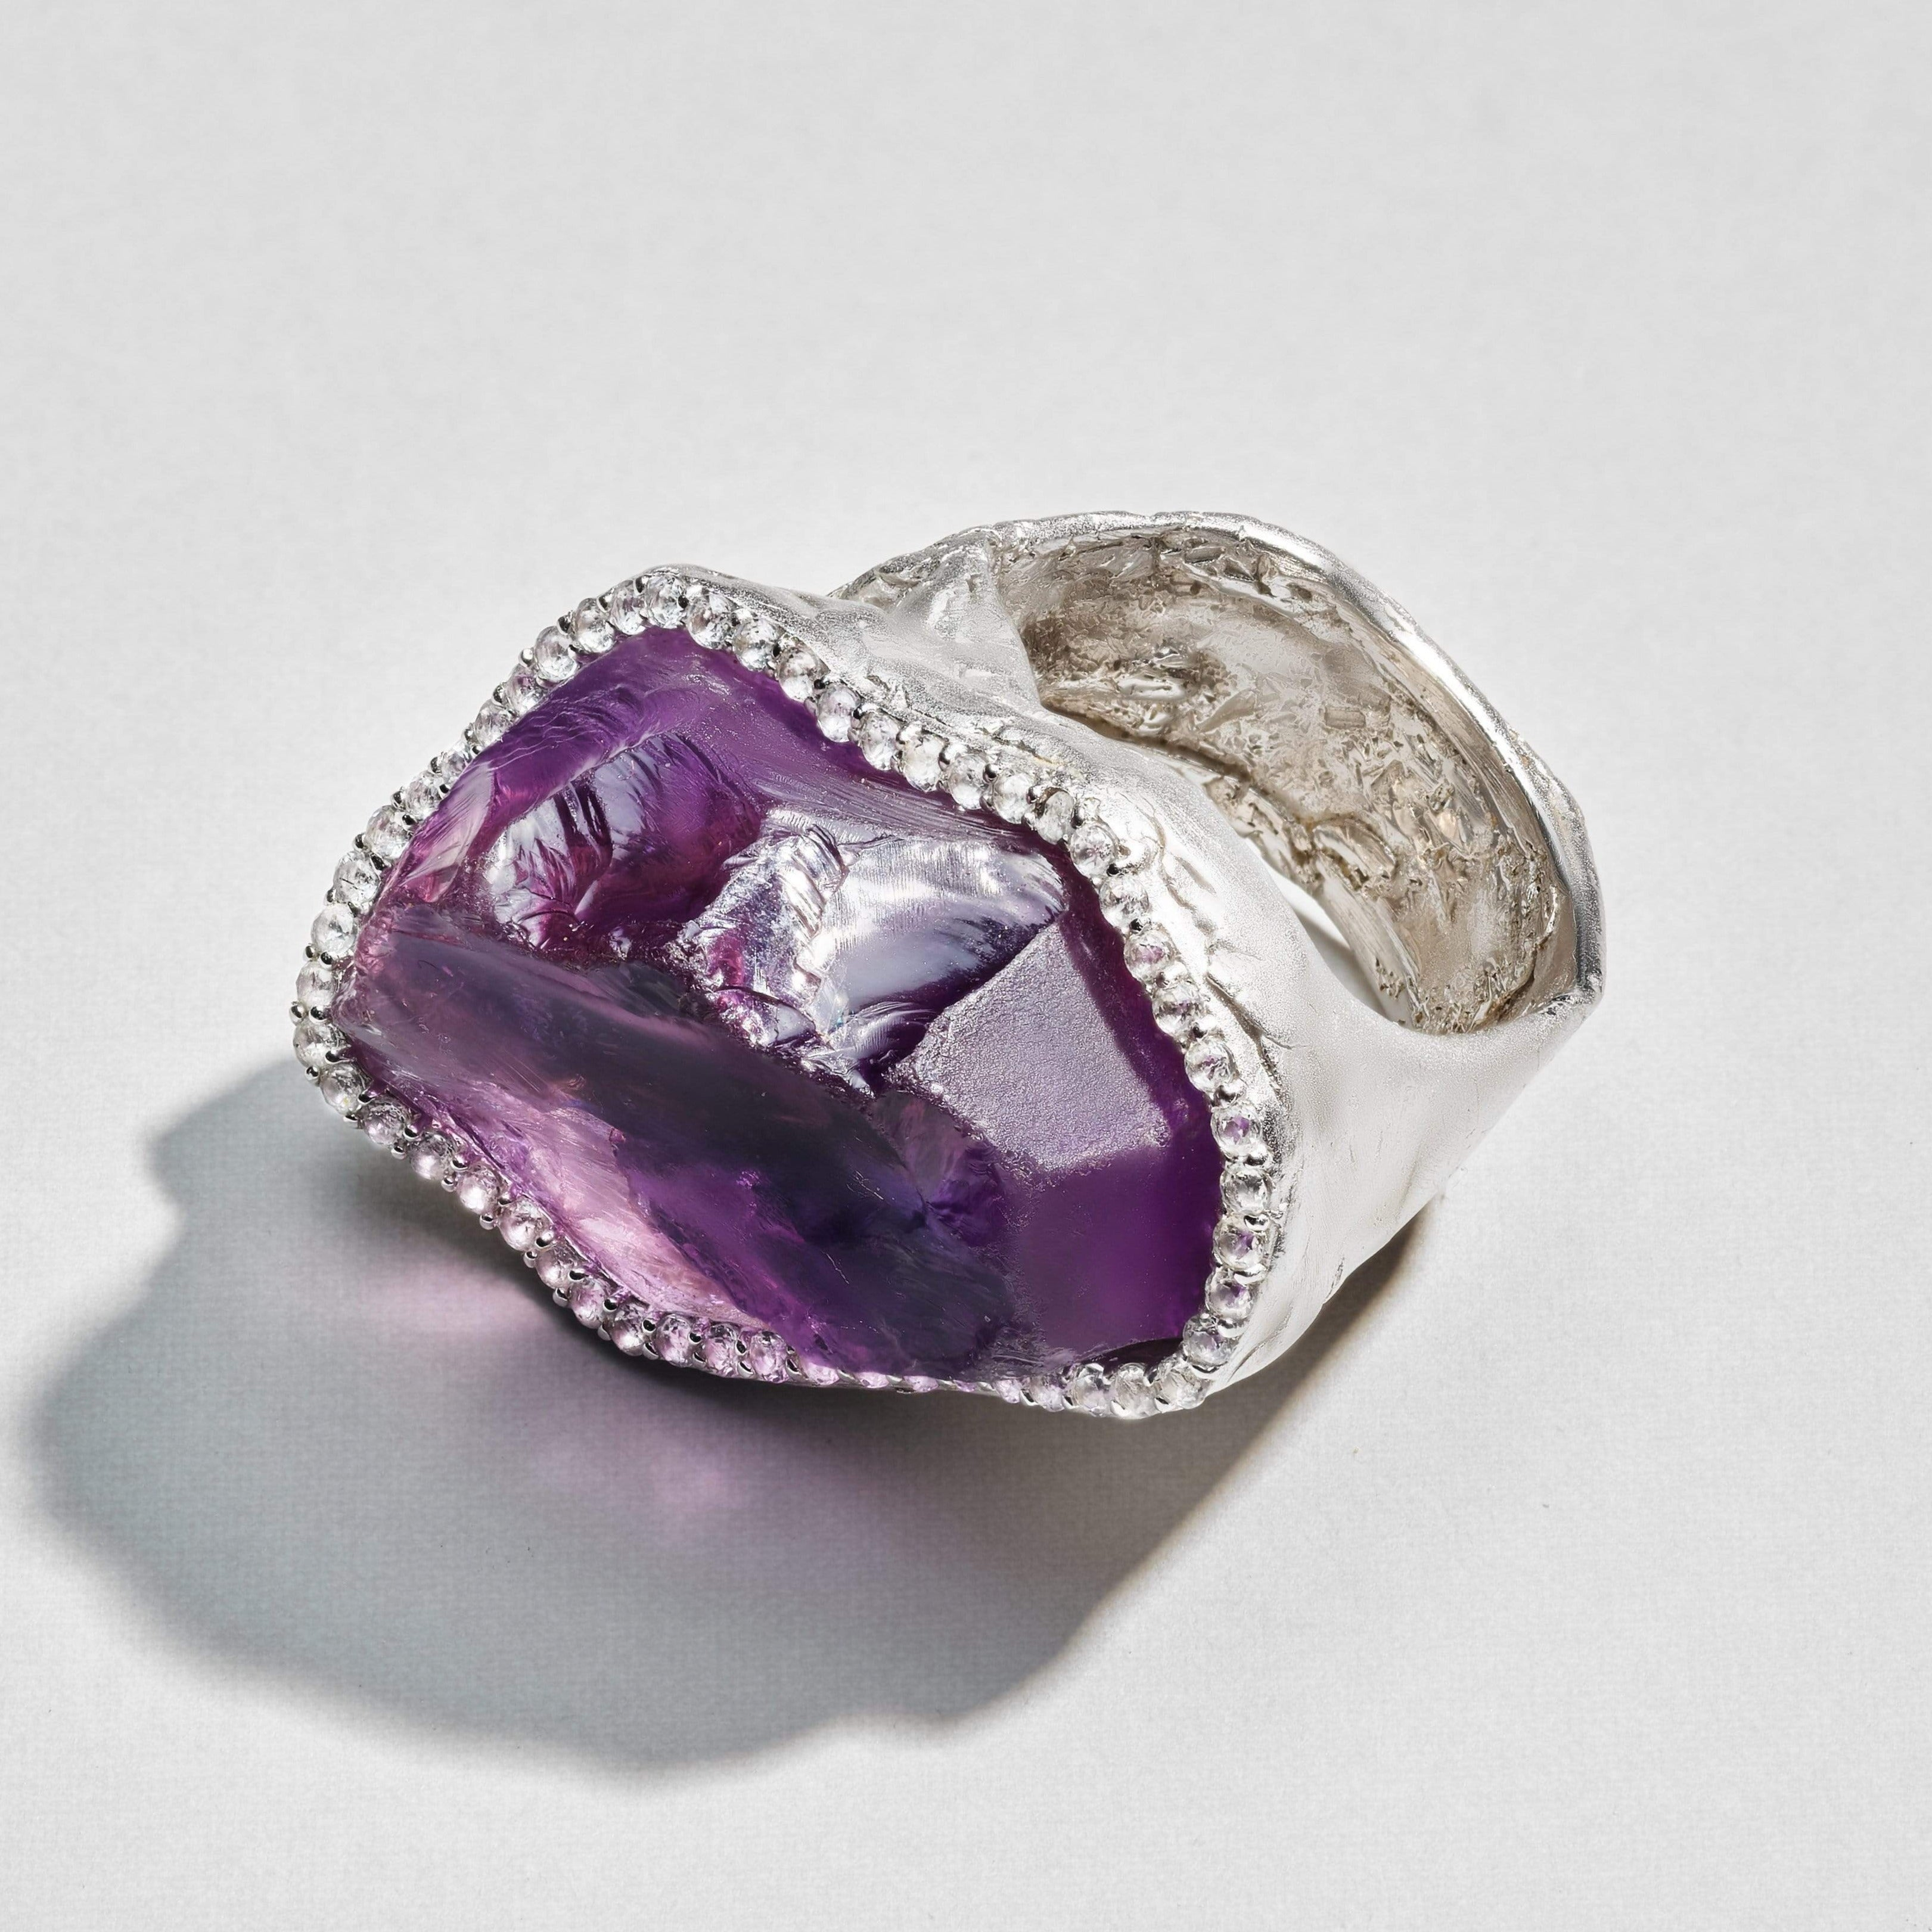 Divana Ring, Amethyst, Exclusive, Rhodium, silver, spo-disabled, StoneColor:purple, Style:Statement, Topaz, Type:LargeSoloStone Ring